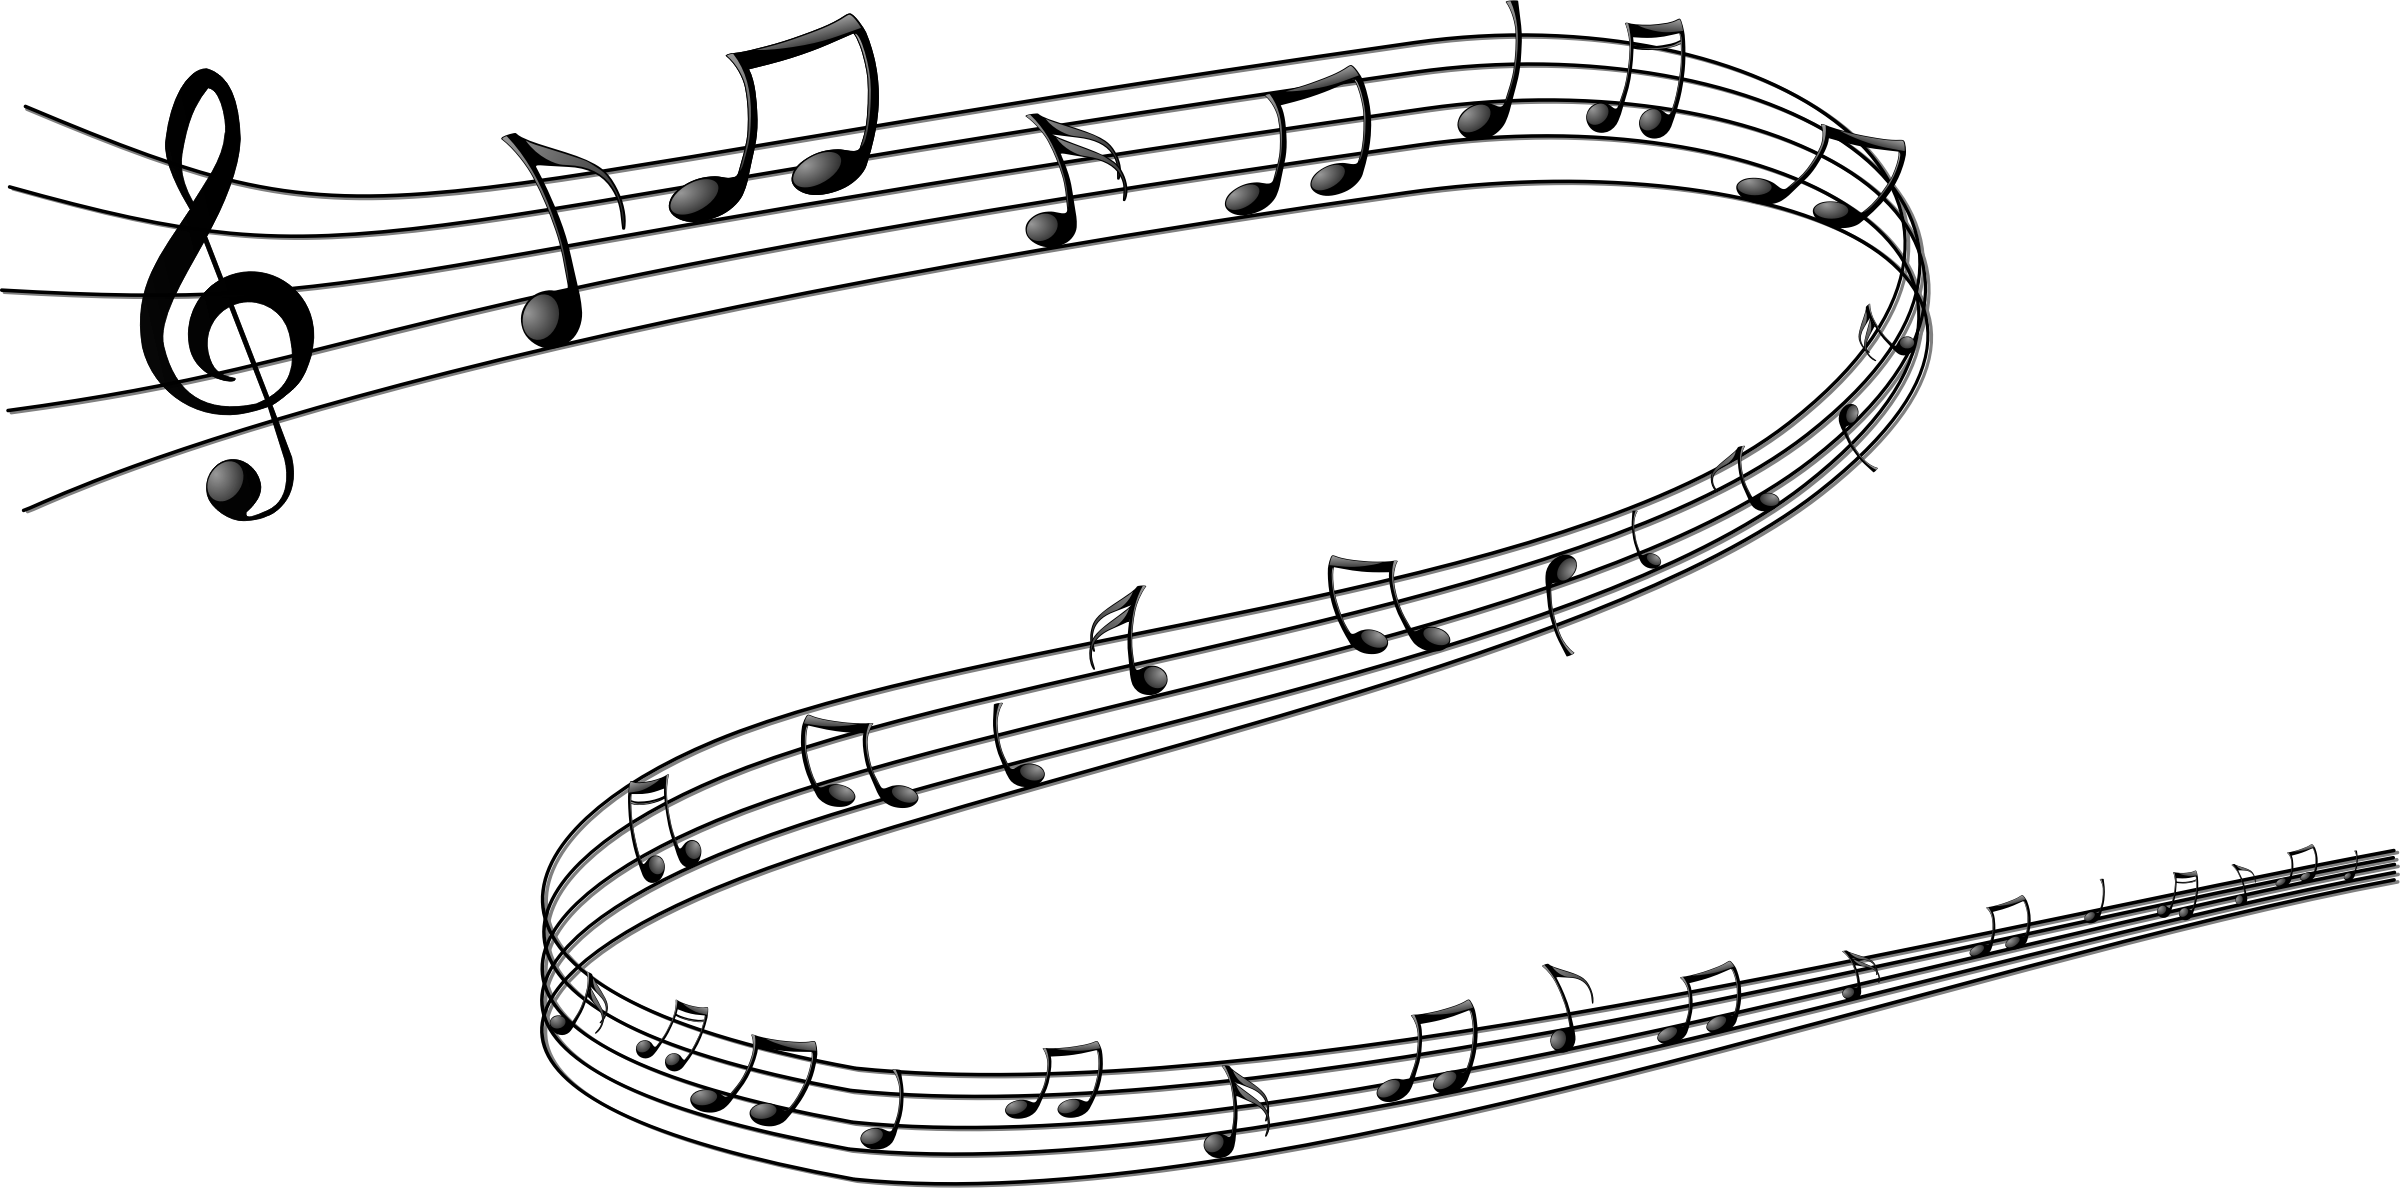 Orchestra clipart free music notes. Musical png transparent images